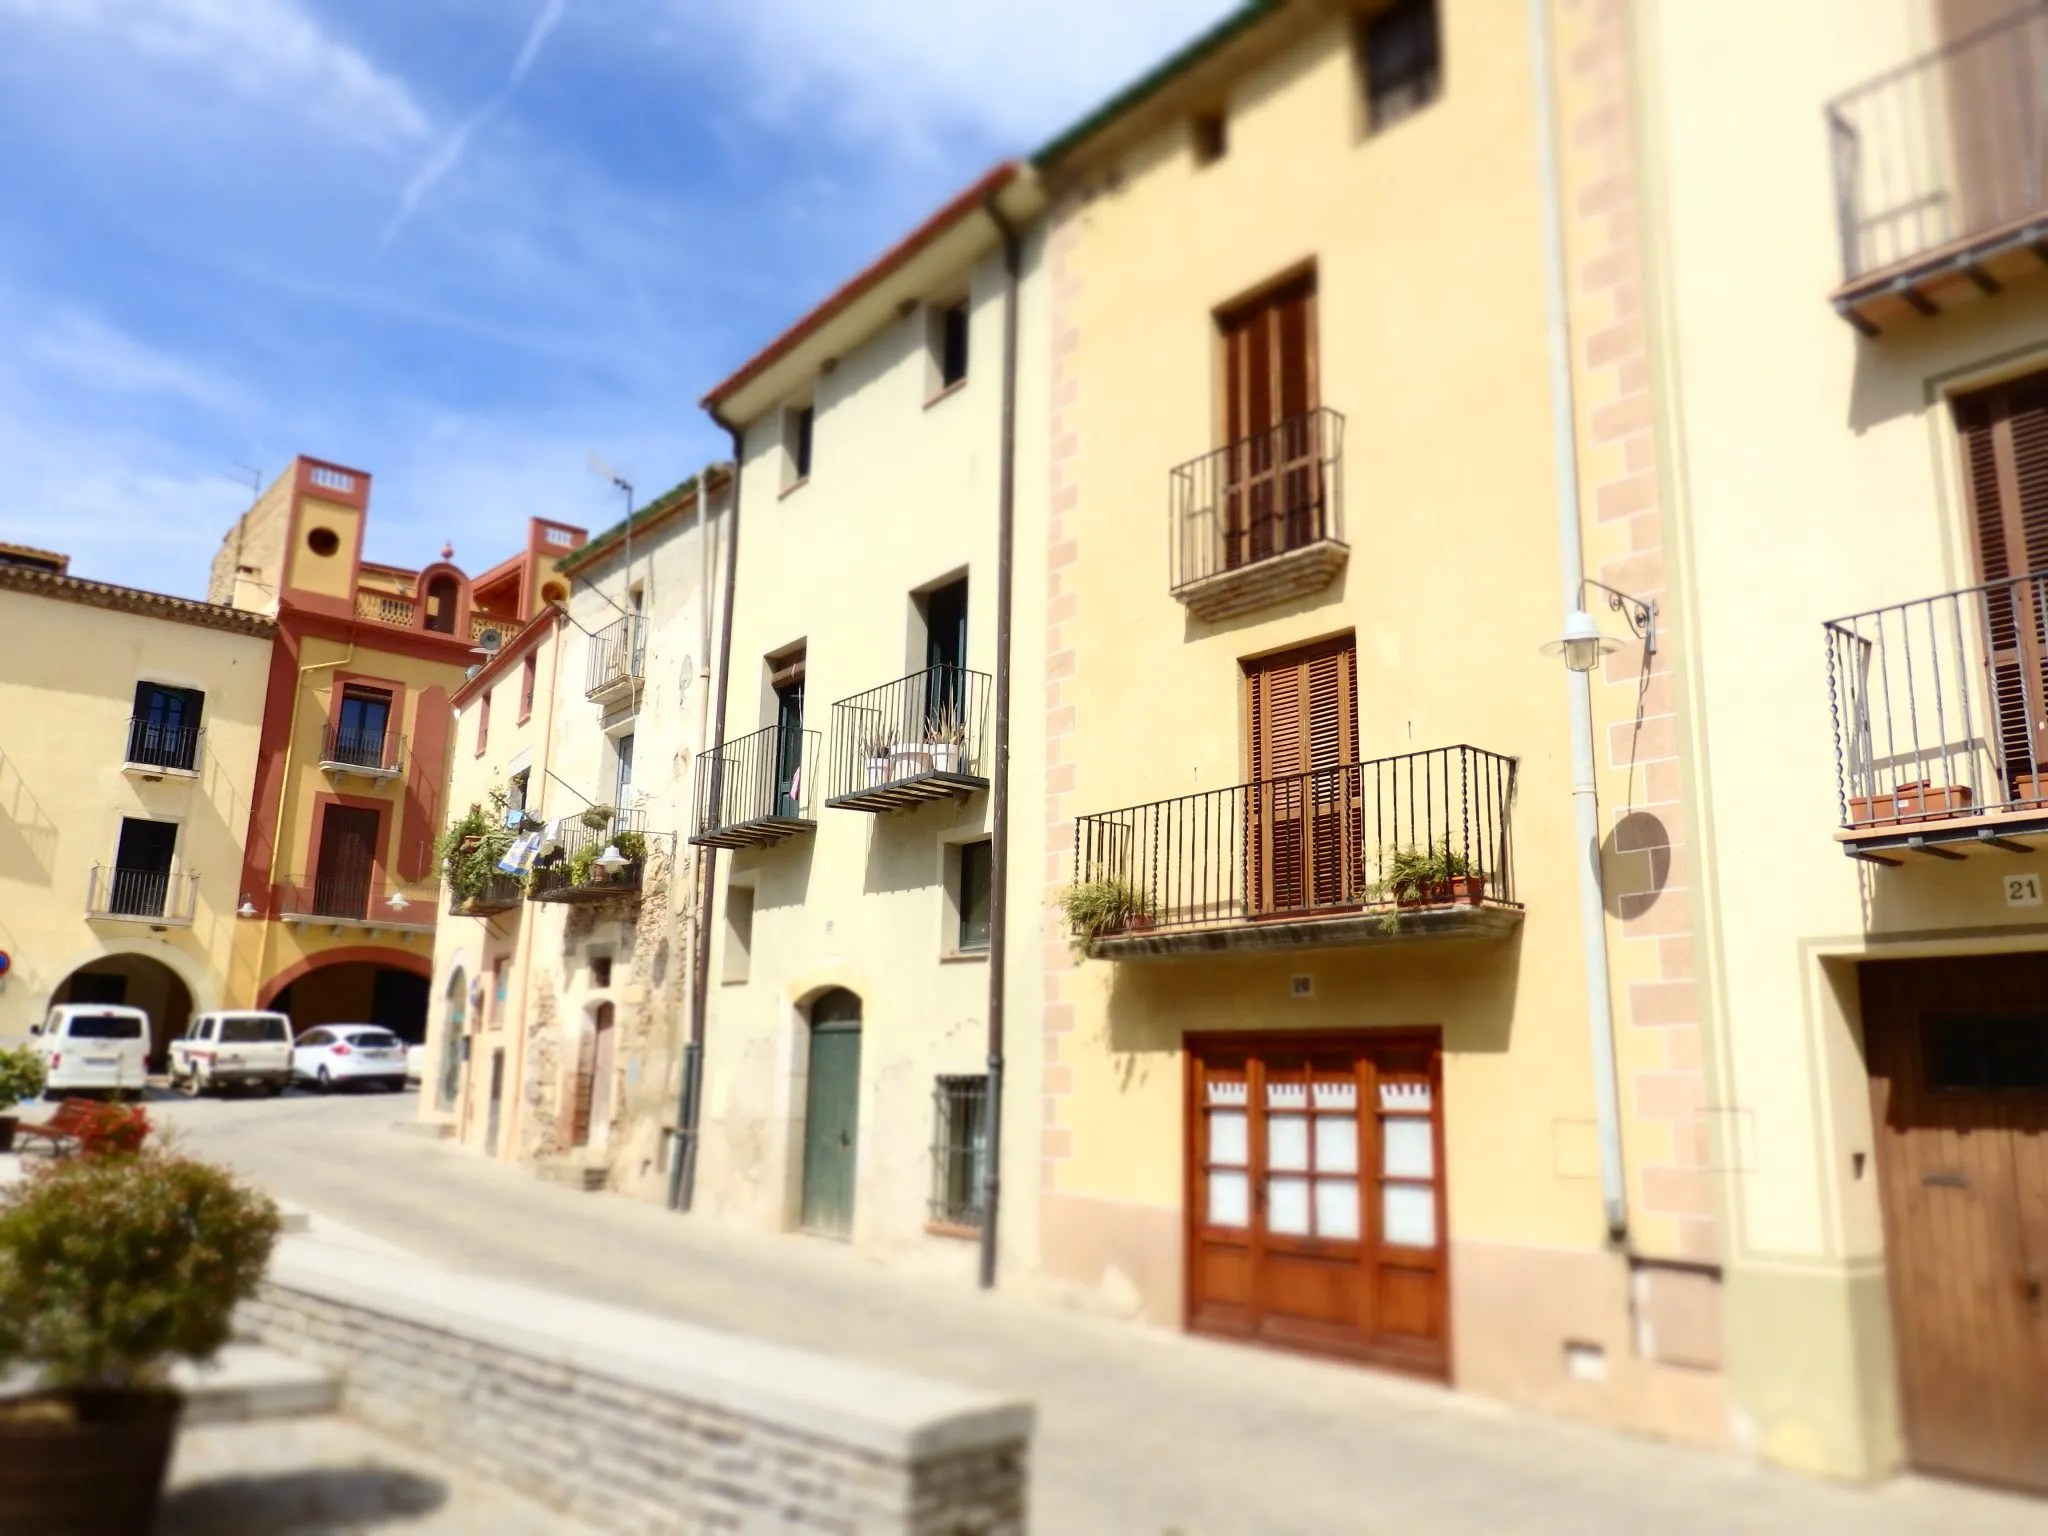 a pretty row of houses in Peratallada in the Baix Emporda, Spain